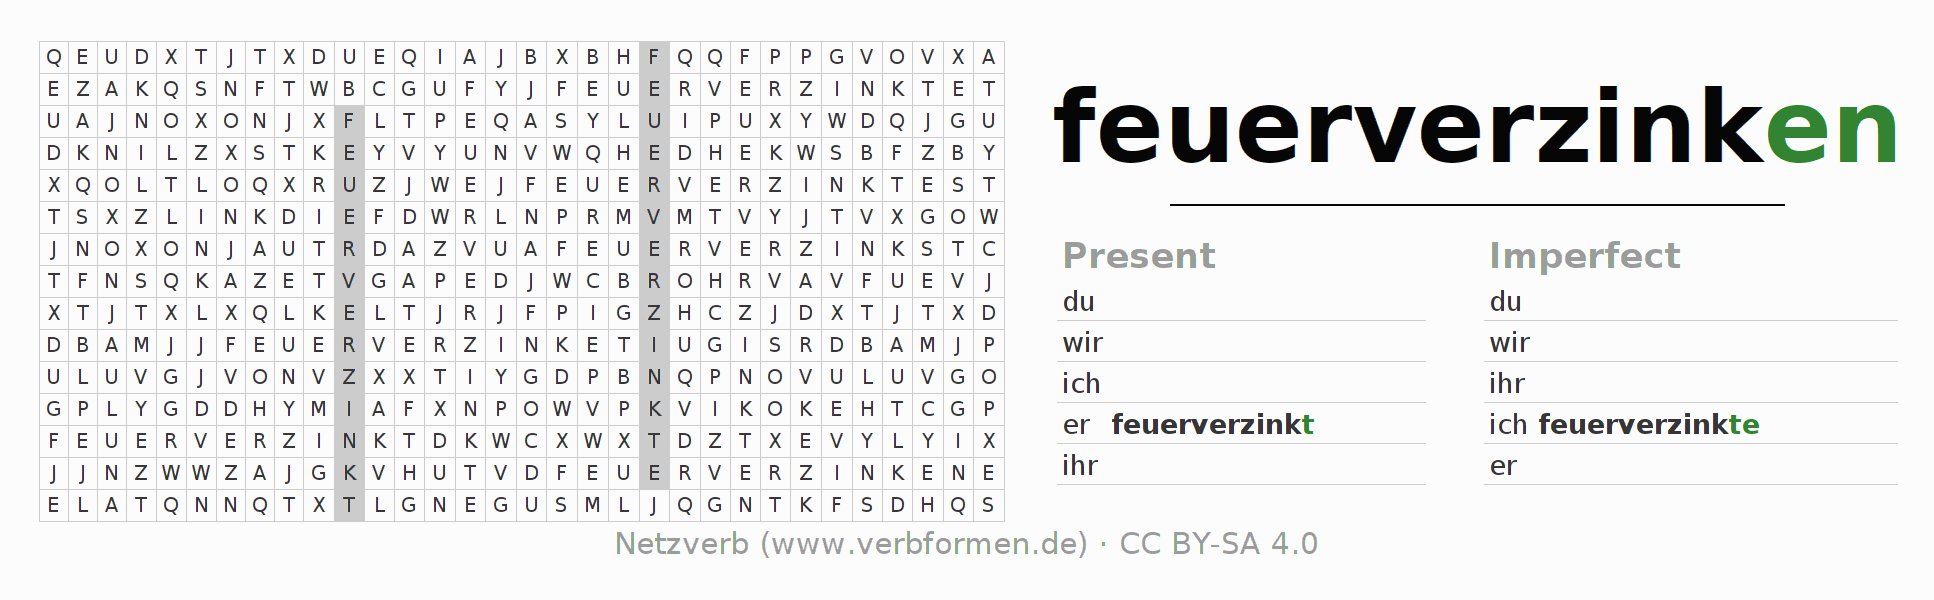 Word search puzzle for the conjugation of the verb feuerverzinken